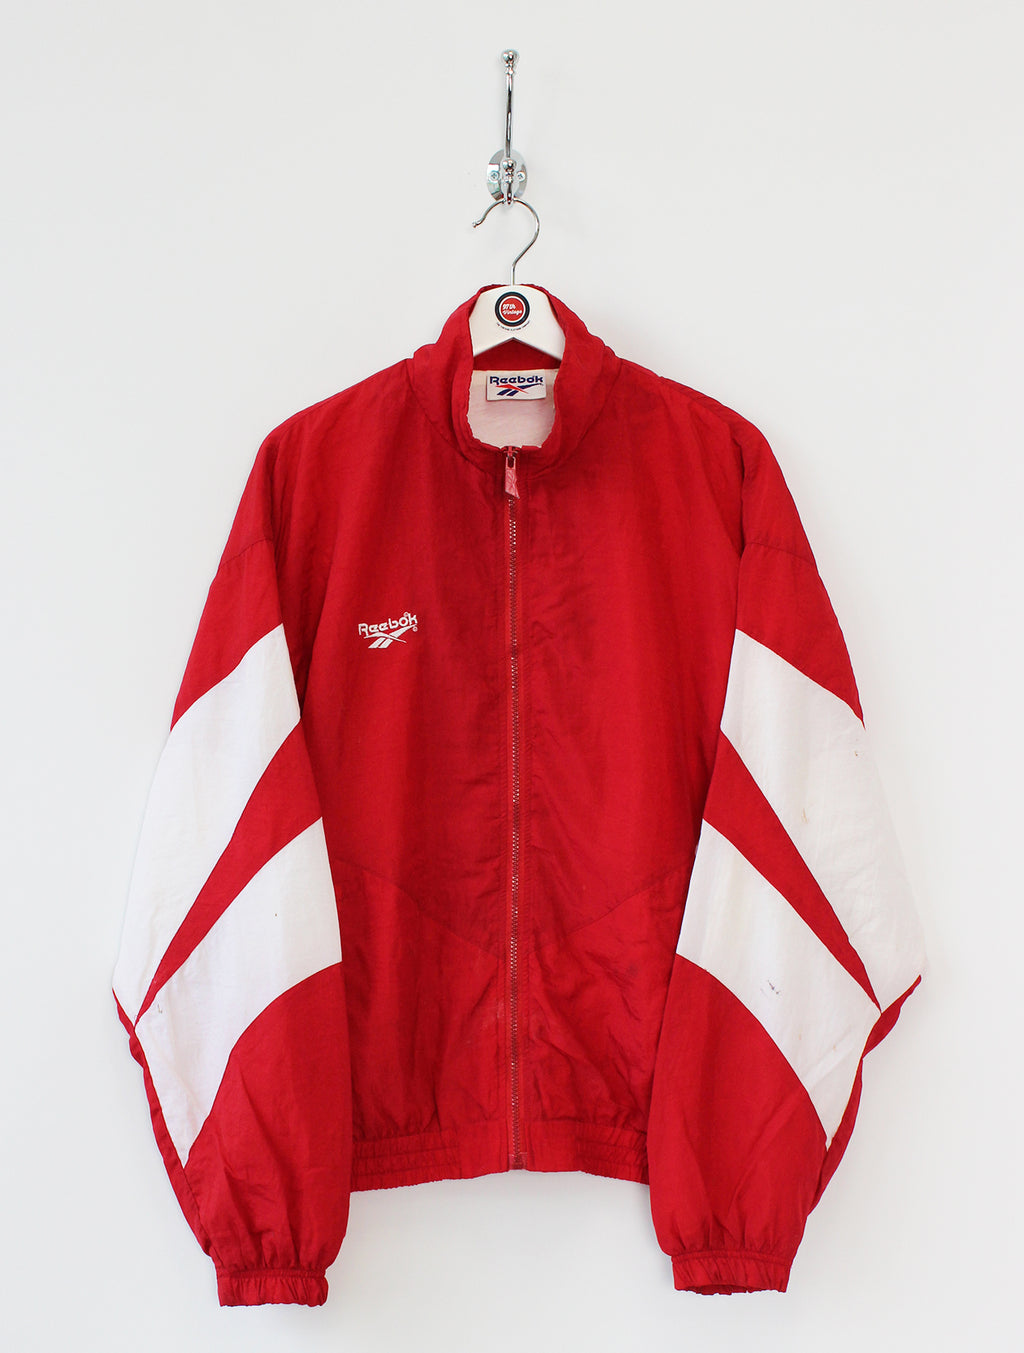 Reebok Shell Suit Jacket (M)